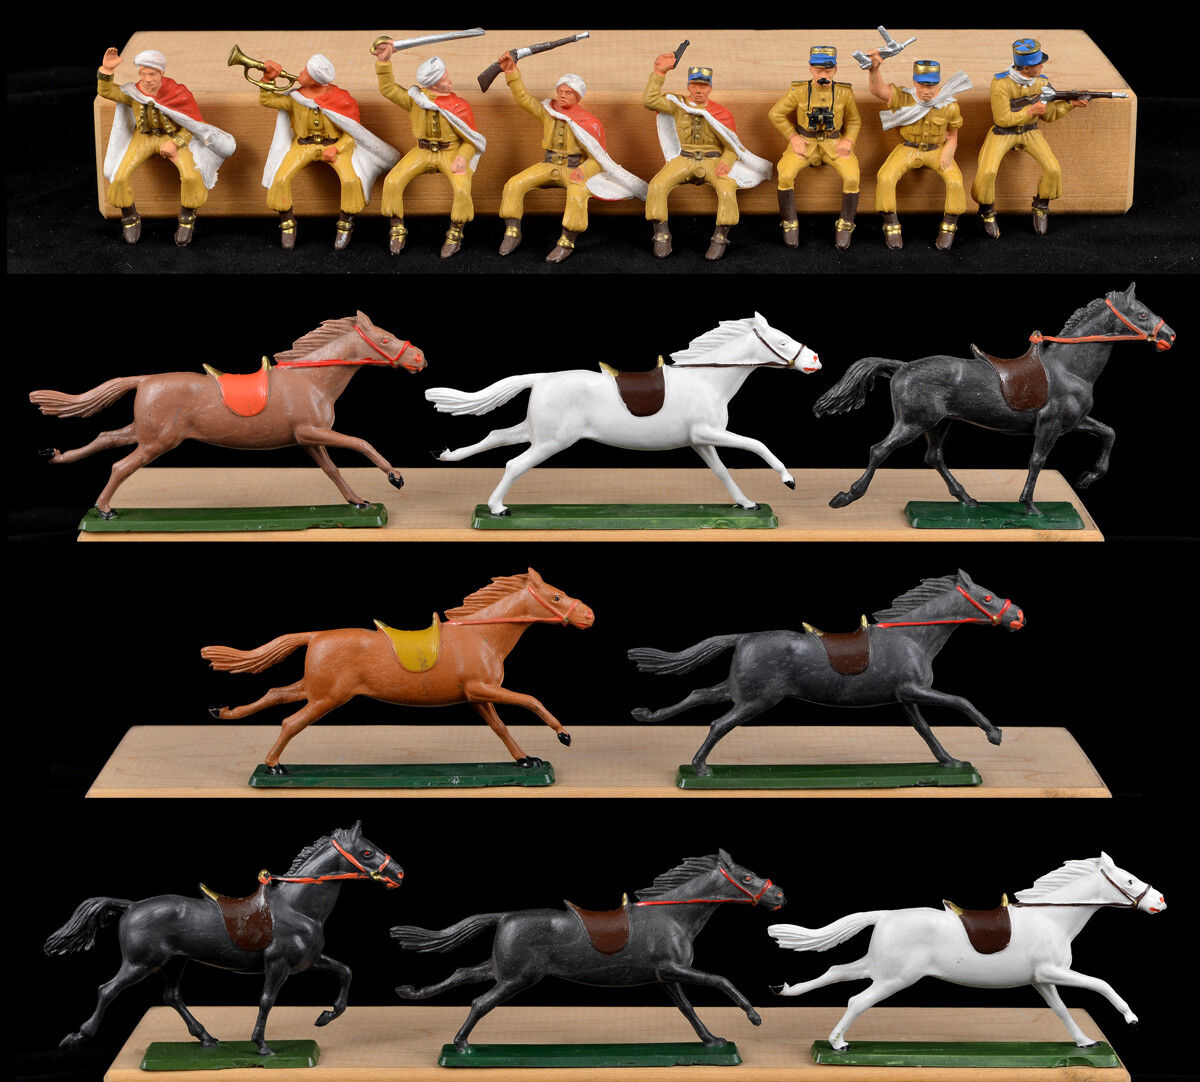 Starlux 8 Mounted French Foreign Legion 60mm painted Toy Soldiers - horses vary